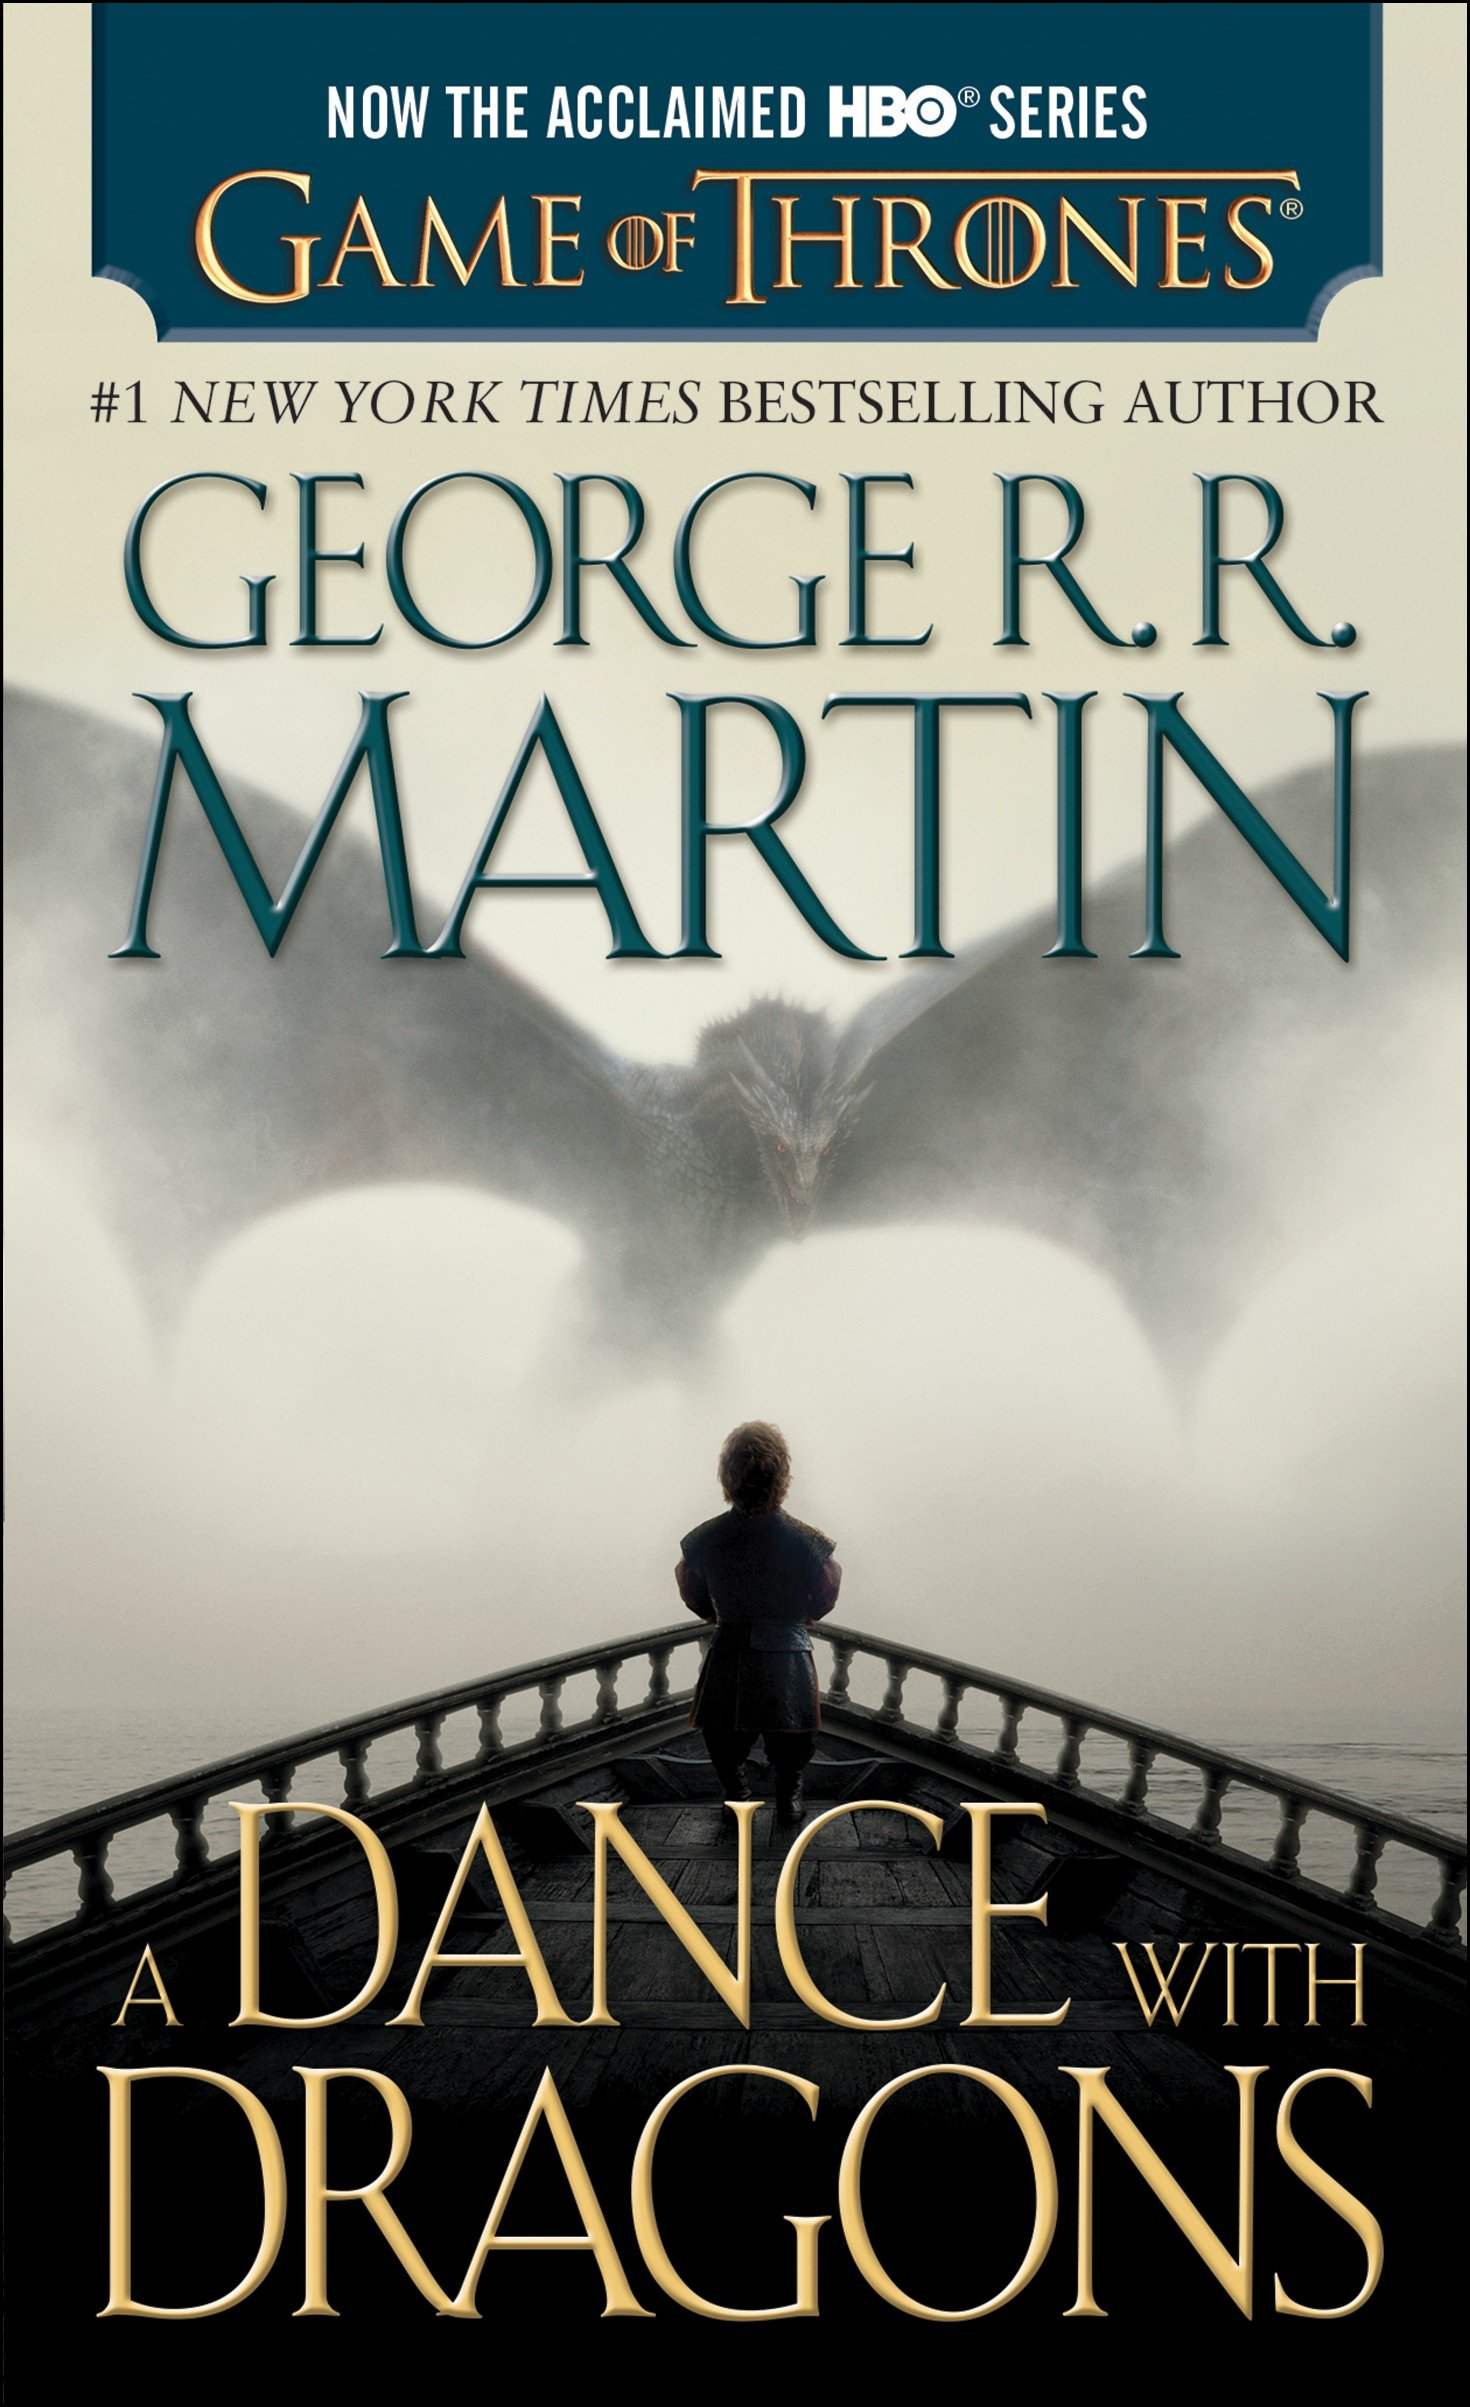 A dance with dragons A Song of Ice and Fire: Book Five cover image